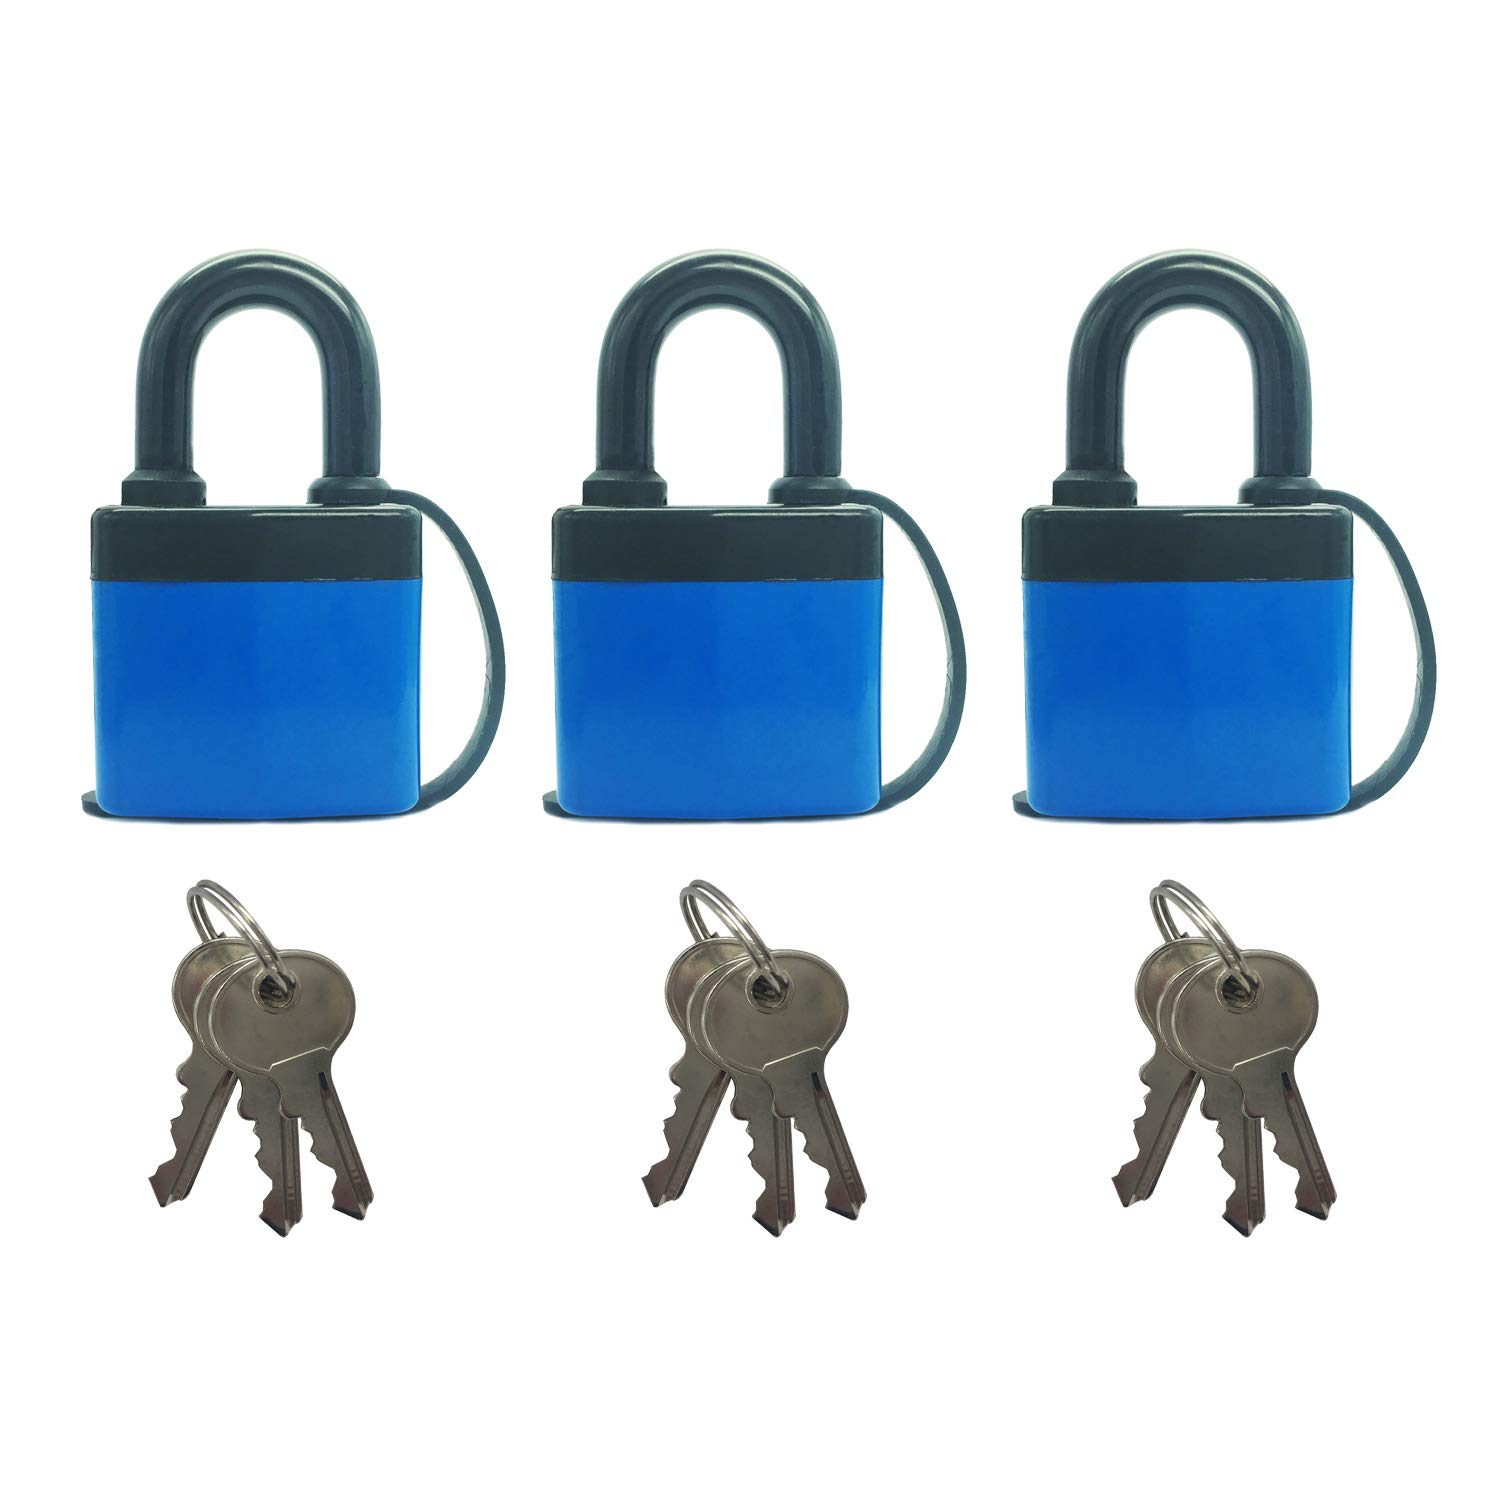 SEPOX Waterproof Laminated Steel Padlock Keyed Alike with Harden Shackle Pack of 3 - Ideal for Home, Garden Shed, Outdoor, Garage, Gate Security